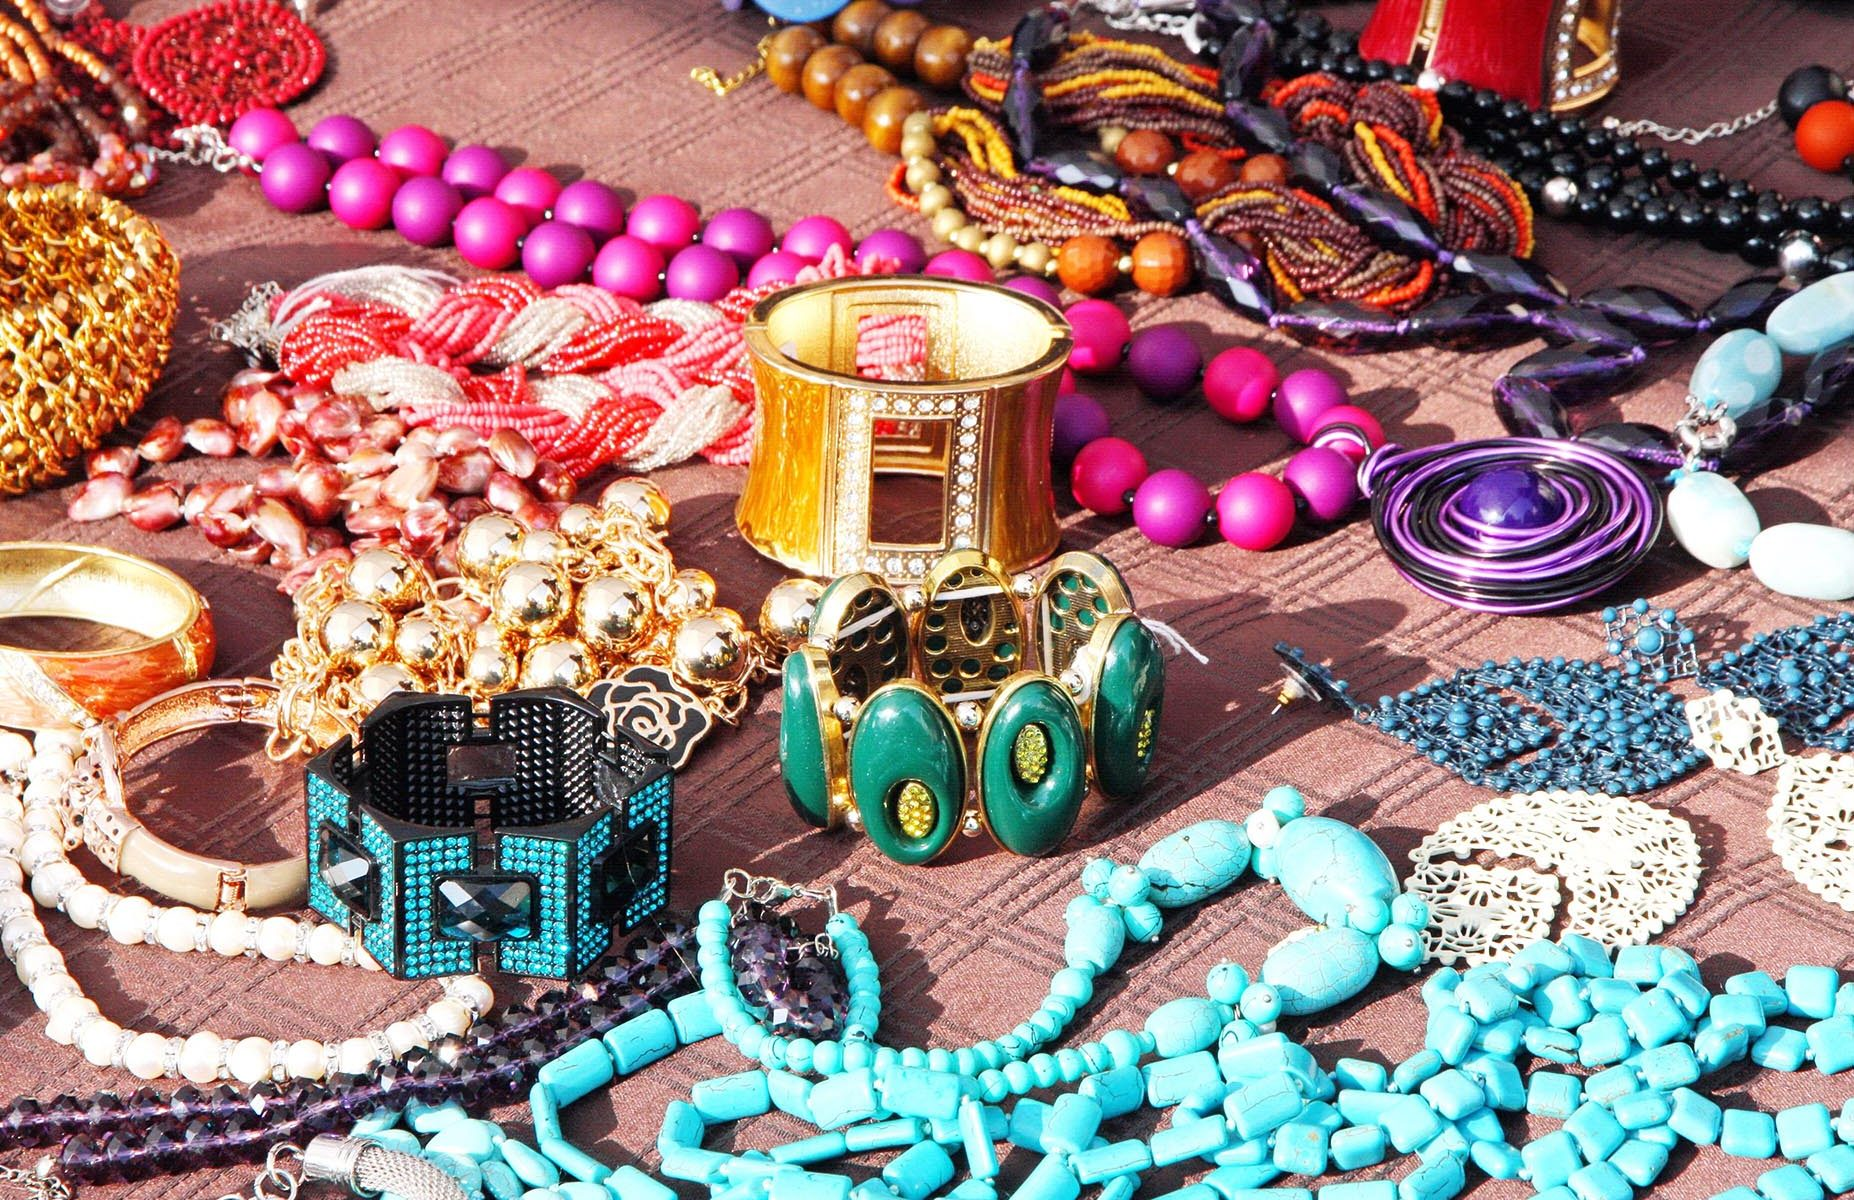 What Products Are Thought Fashion Accessories And How Come There A Lot Of?